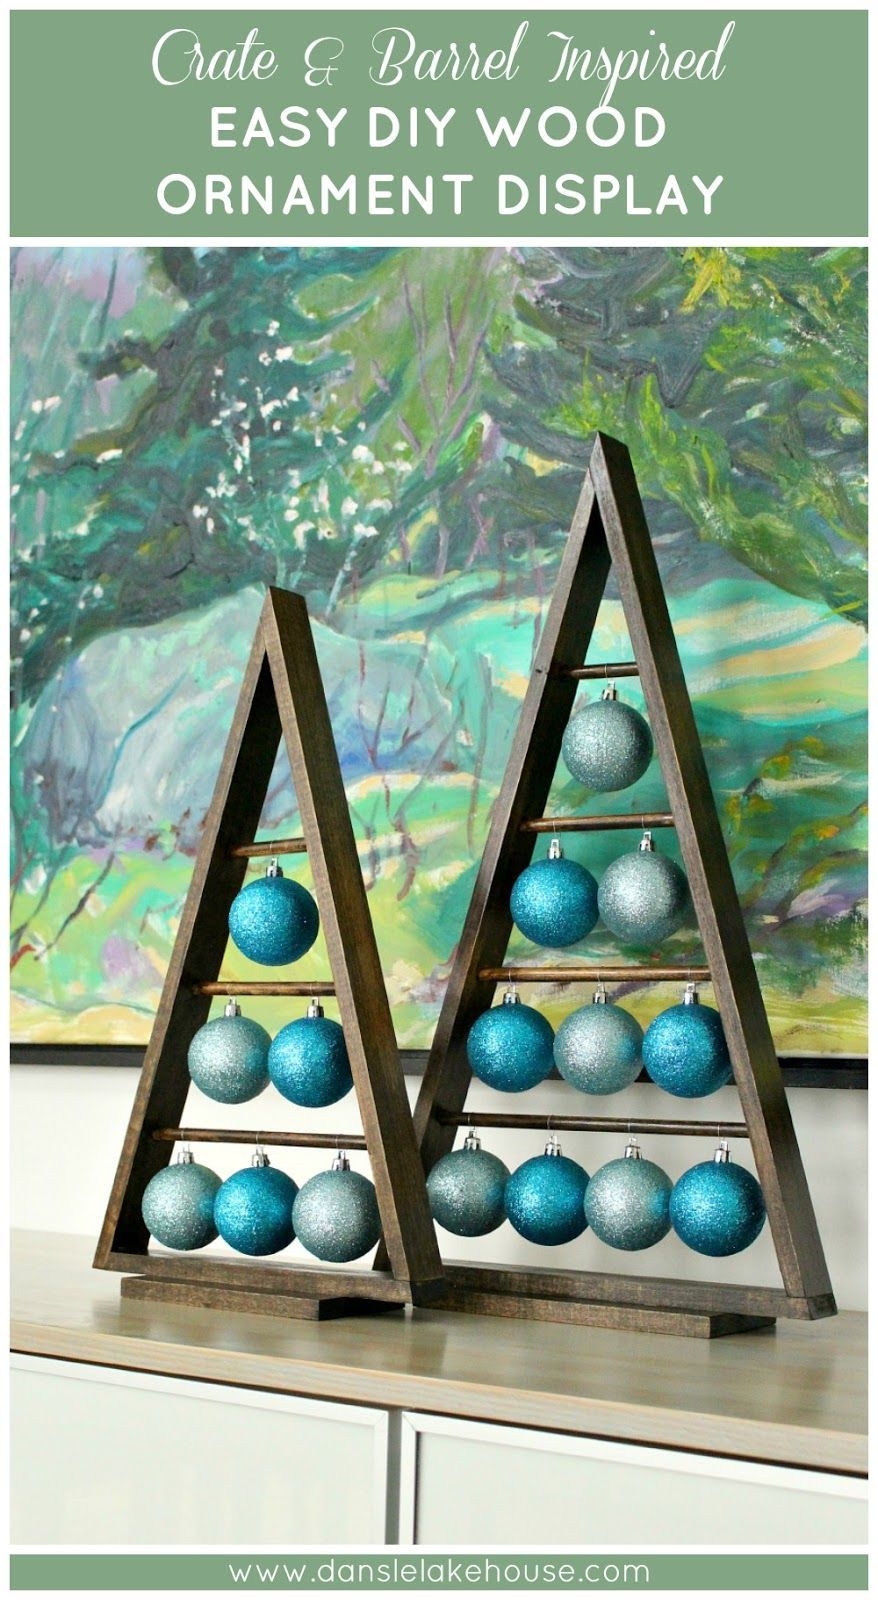 Crate & Barrel Ornament Stand Knock Off // Easy DIY A-frame Wood Ornament Display // Alternatives to traditional Christmas tree // Rustic modern holiday decor ideas // DIY Christmas decor // Handmade gift ideas for the holidays